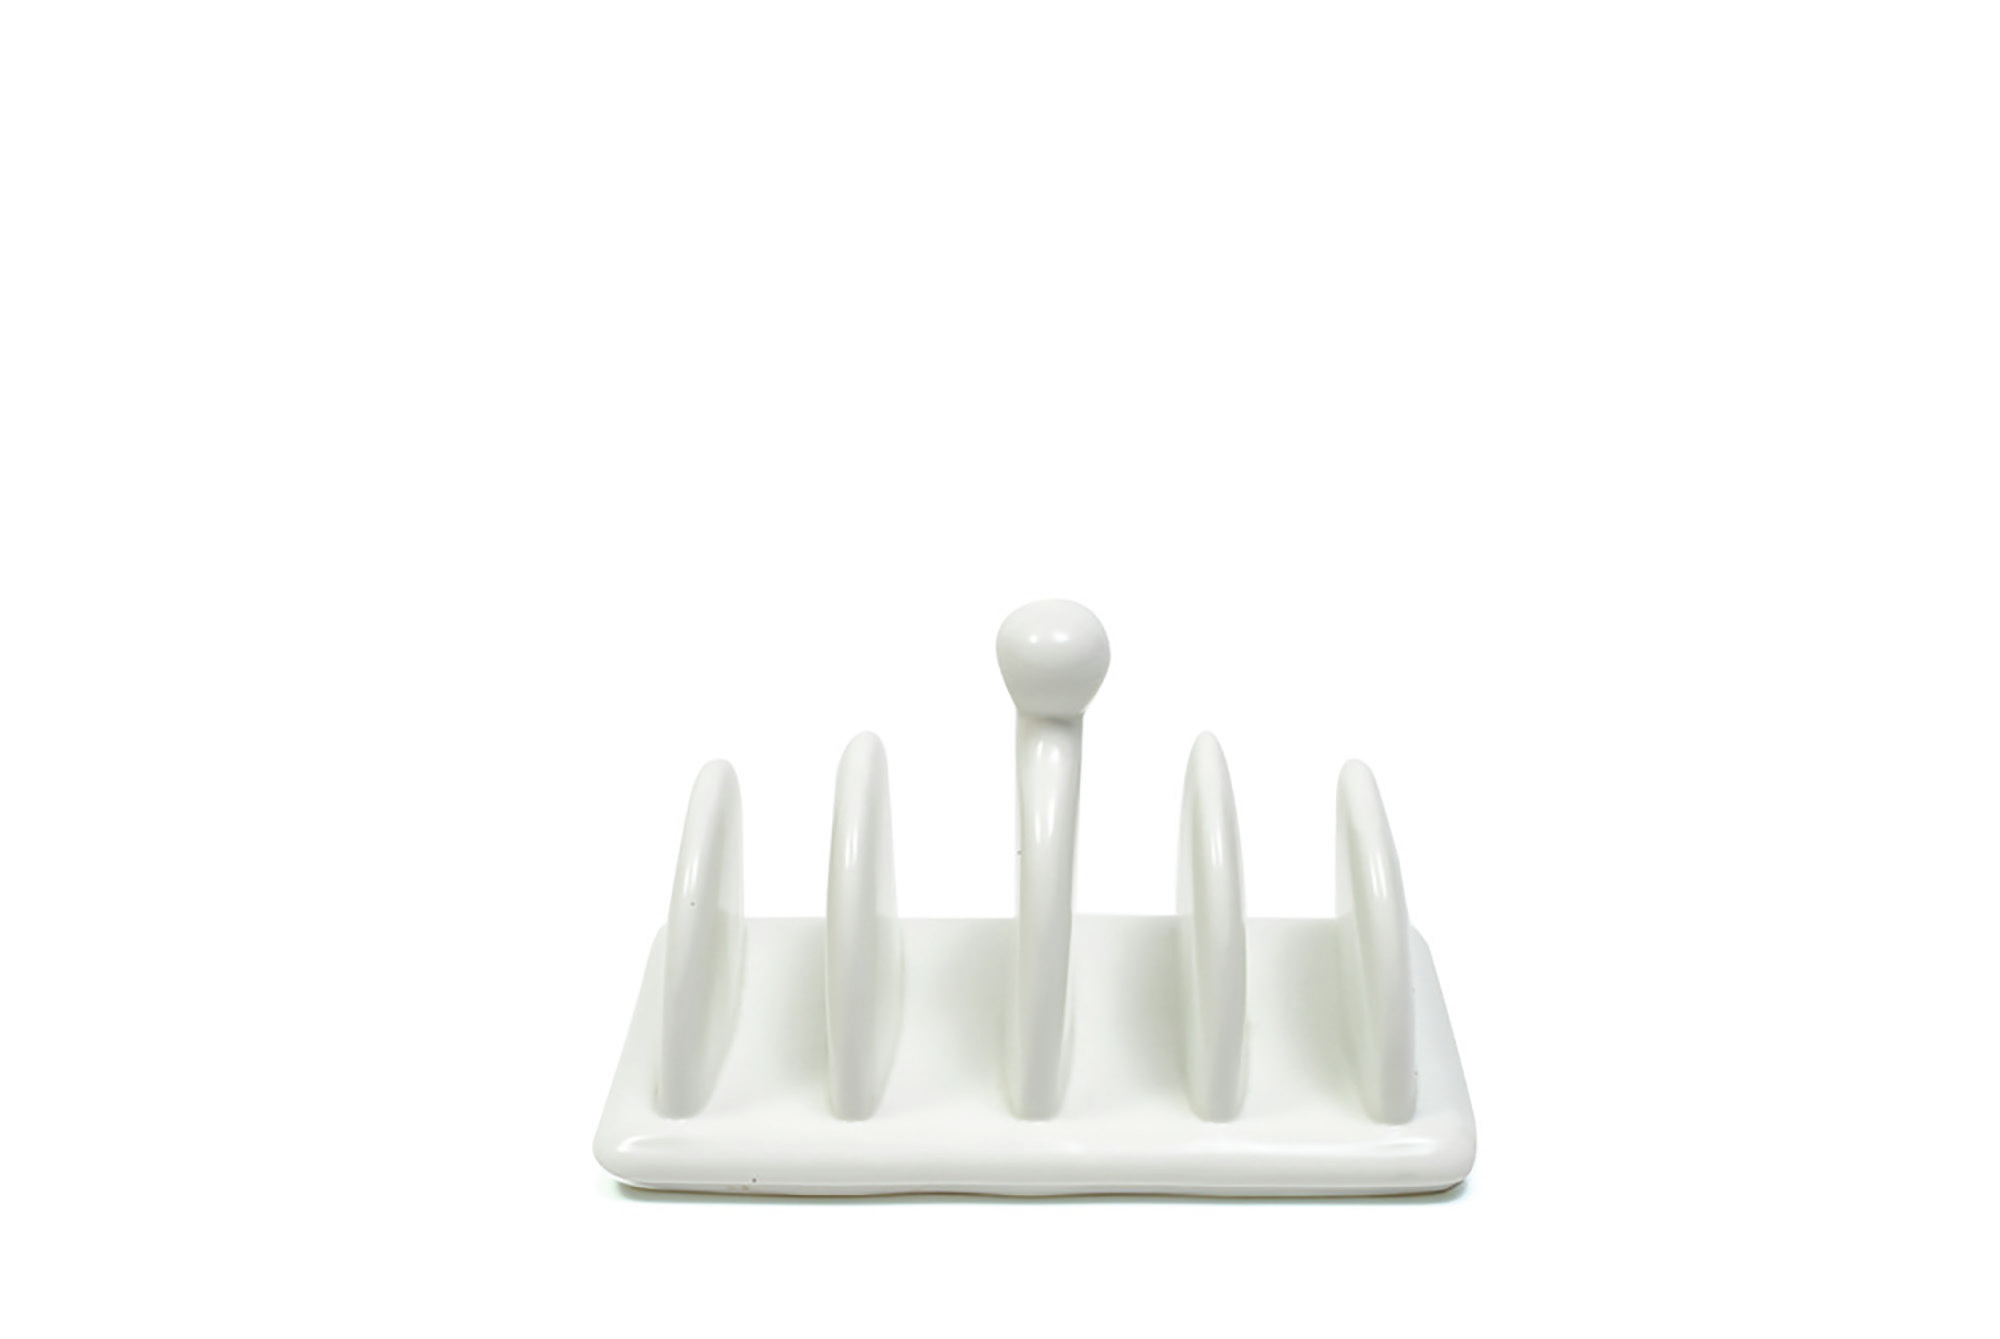 Maxwell & Williams White Basics 16X8.5Cm Toast Rack Gift Boxed